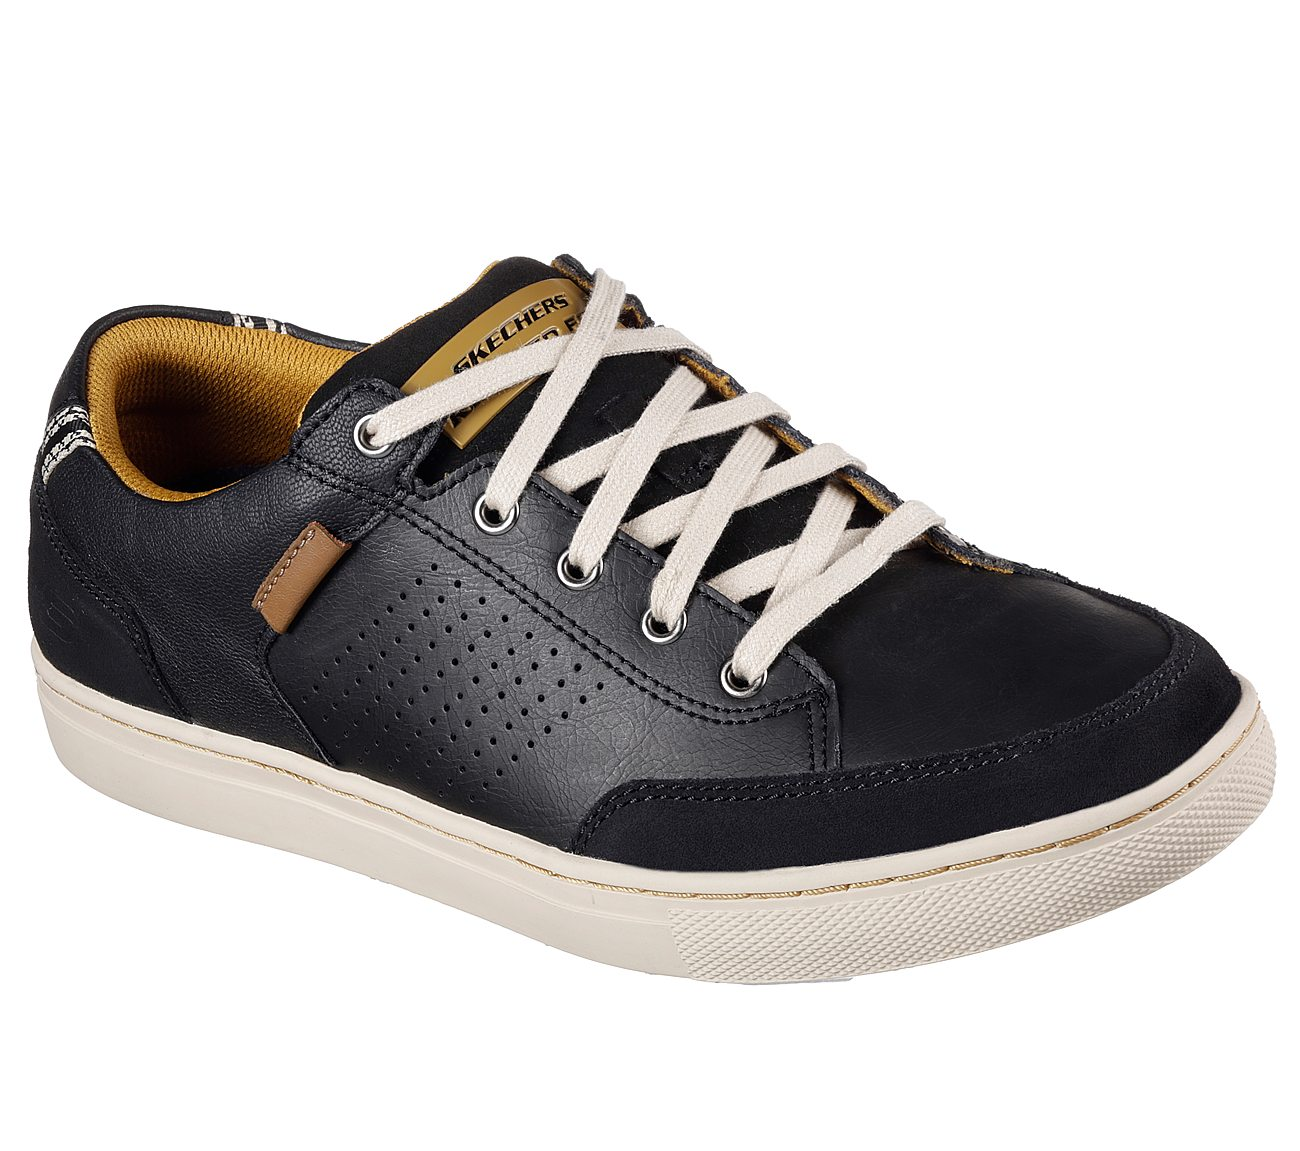 e1fc145b0728 Buy SKECHERS Relaxed Fit  Elvino - Lemen Comfort Shoes Shoes only  70.00